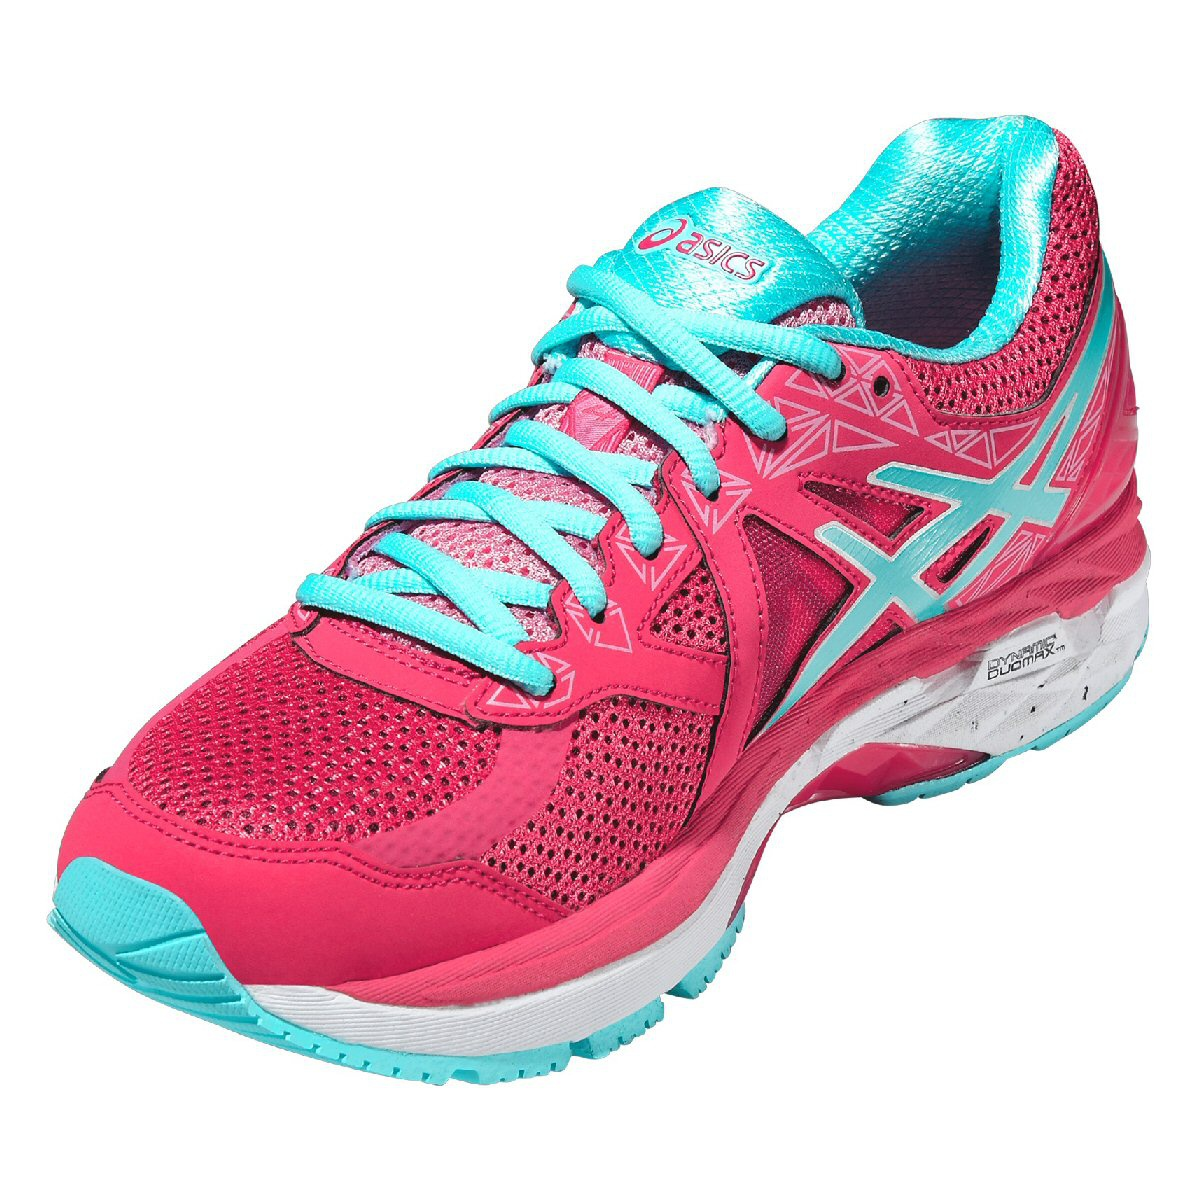 Asics Tiger Running Shoes For Women